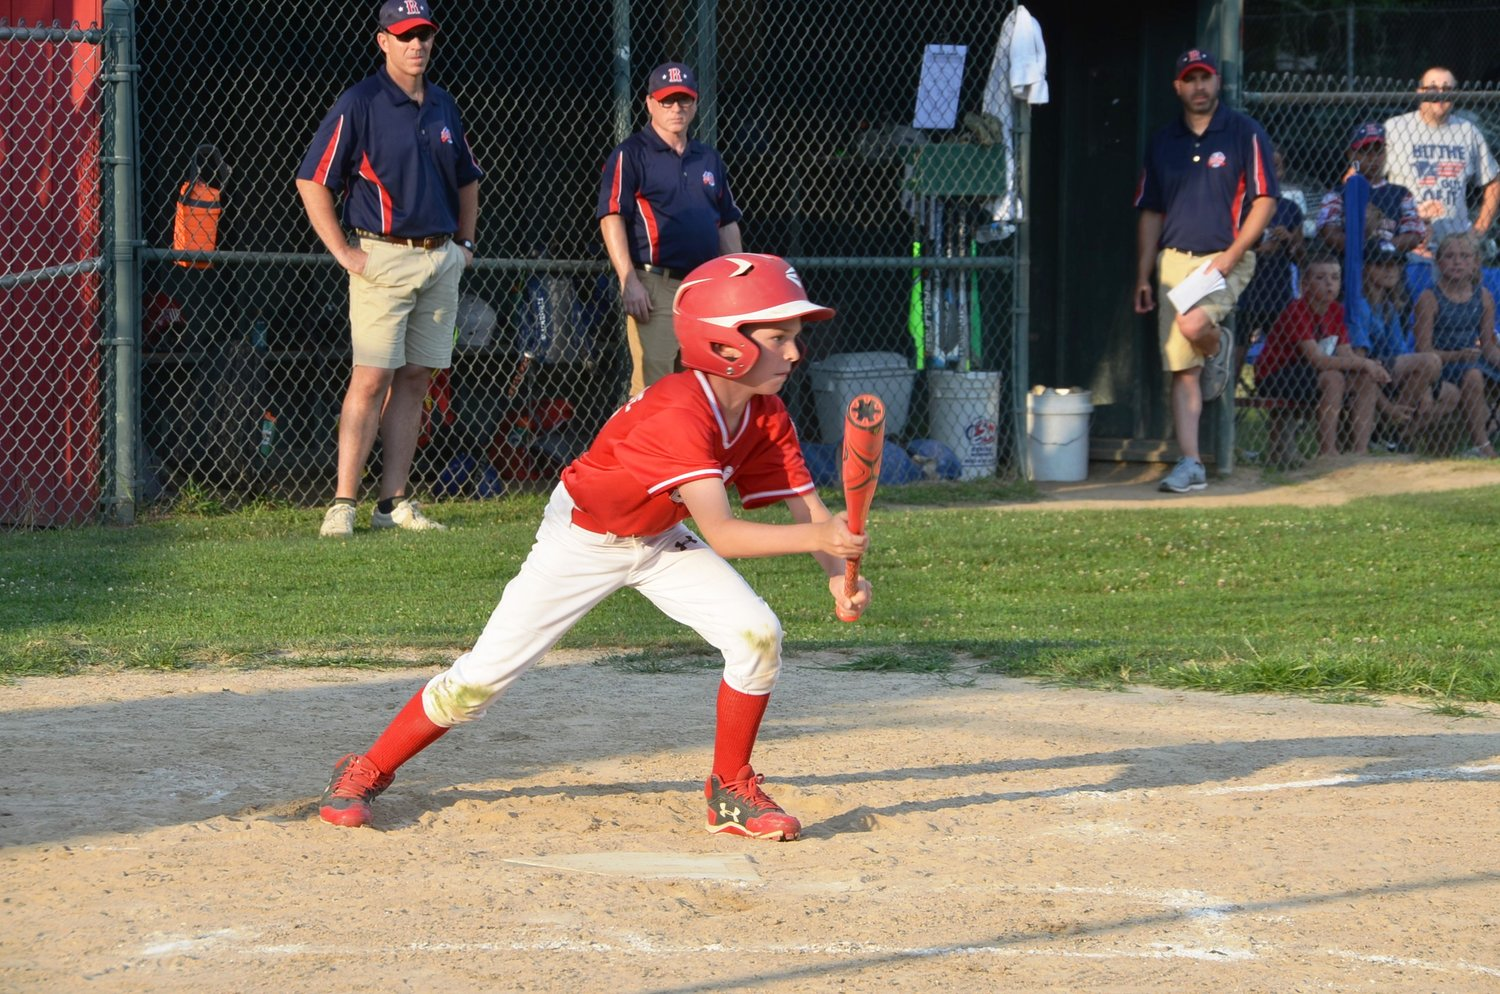 KJ Levesque putting down a perfect bunt for Riverside in game against Rumford. Photo by Kathy Saleeba.